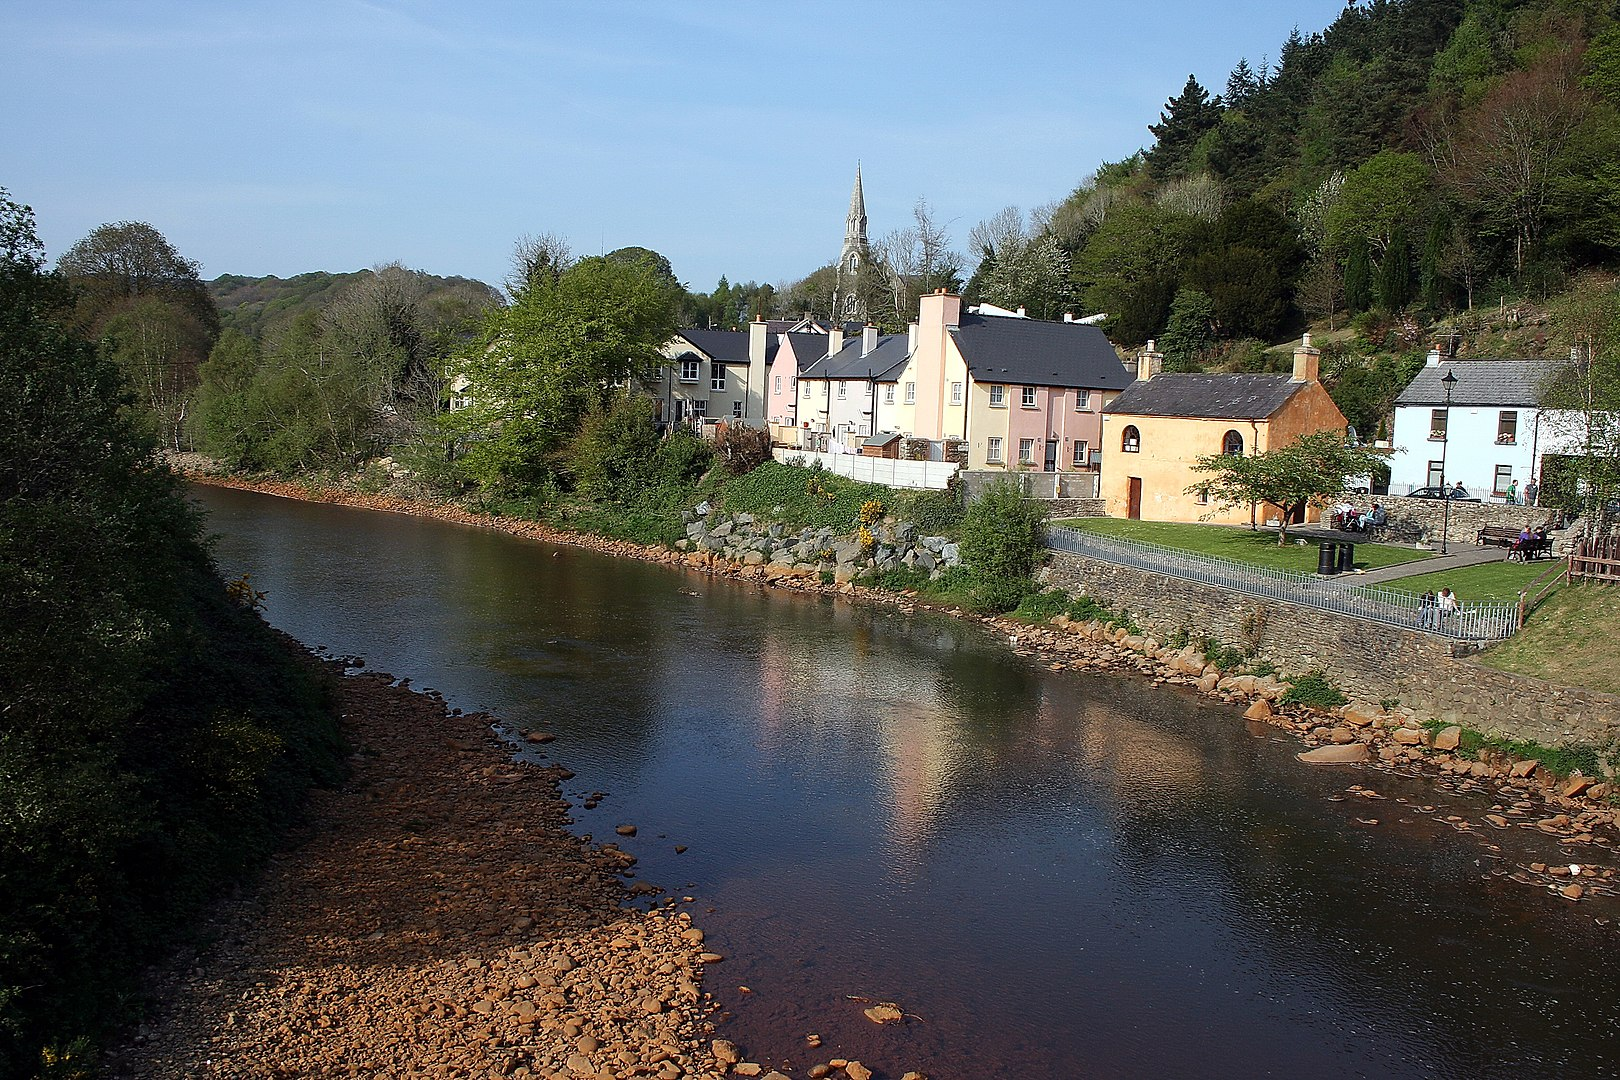 Photograph of Avoca River with village in the background